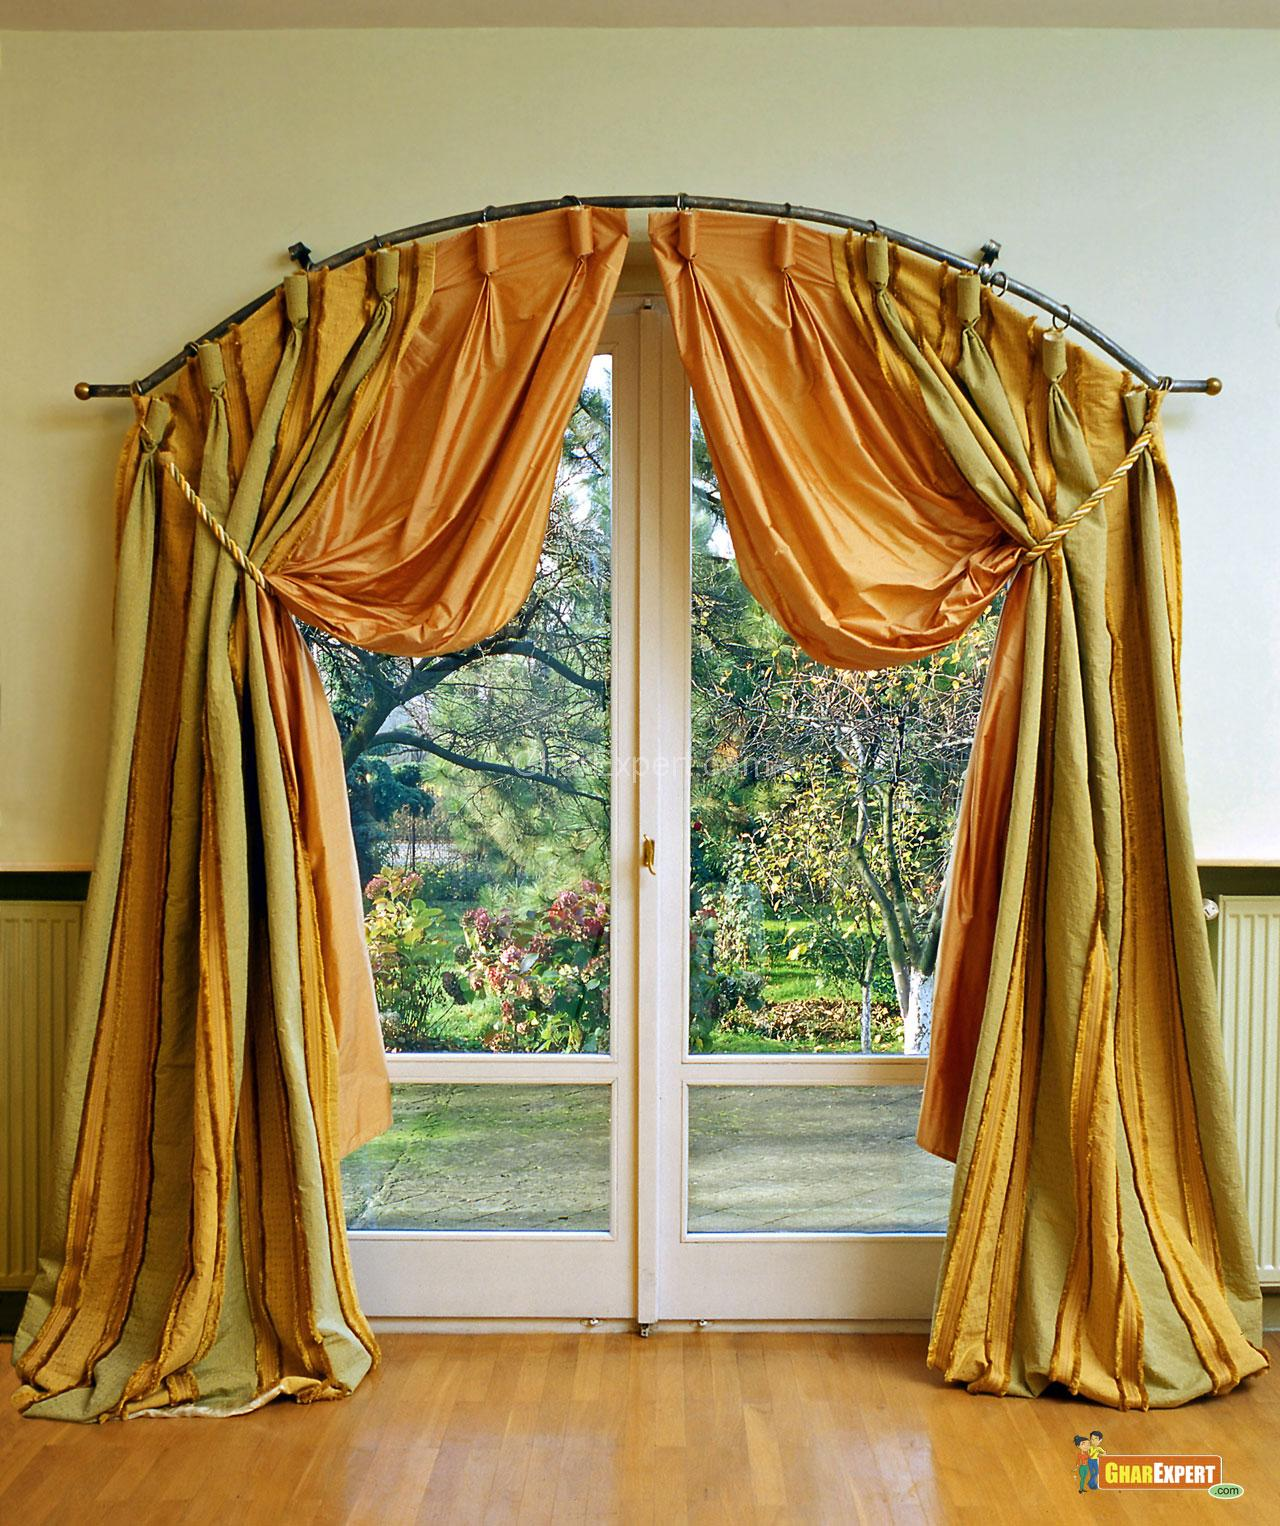 68-Beautiful-And-Elegant-Drapes-For-Sliding-Glass-Doors-Desig-Ideas-Door-Glass-Doors-Design-Ideas-Ideas-Charming-Orange-Green-Drapes-For-White-Sliding-Glass-Doors-With-Oval-Shaped-Curtain-Rod-